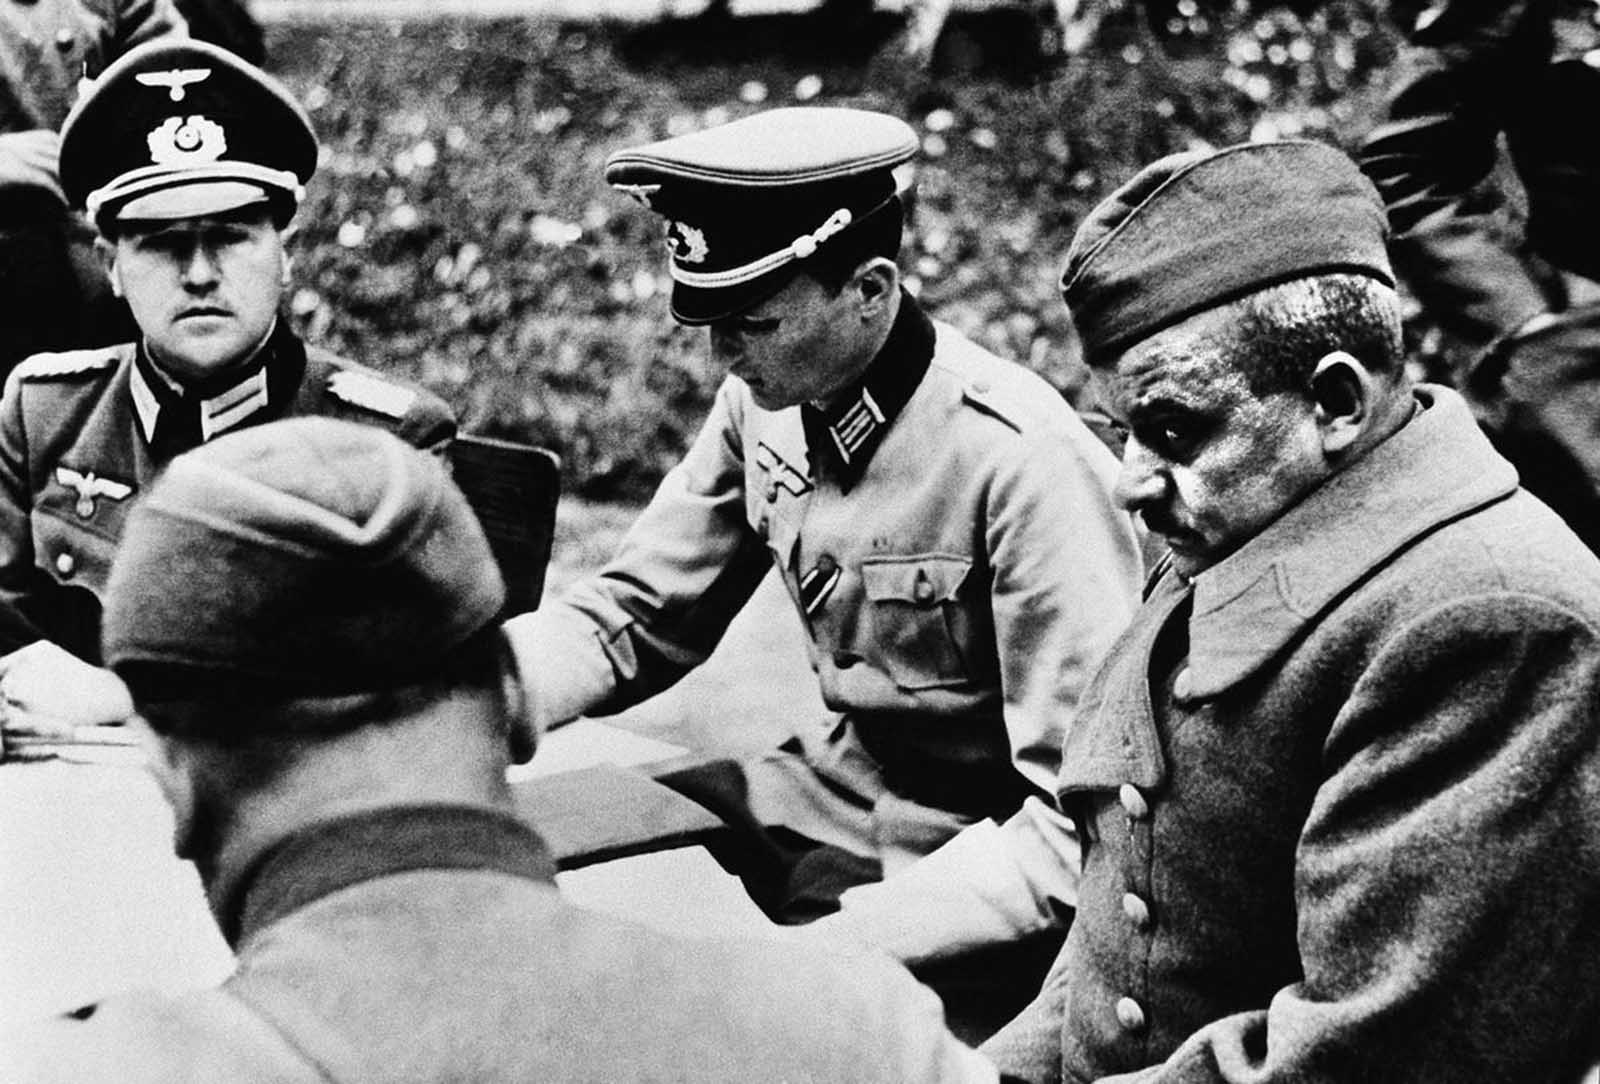 German sources described the gloomy looking officer at the right as a captured Russian colonel who is being interrogated by Nazi officers on October 24, 1941.